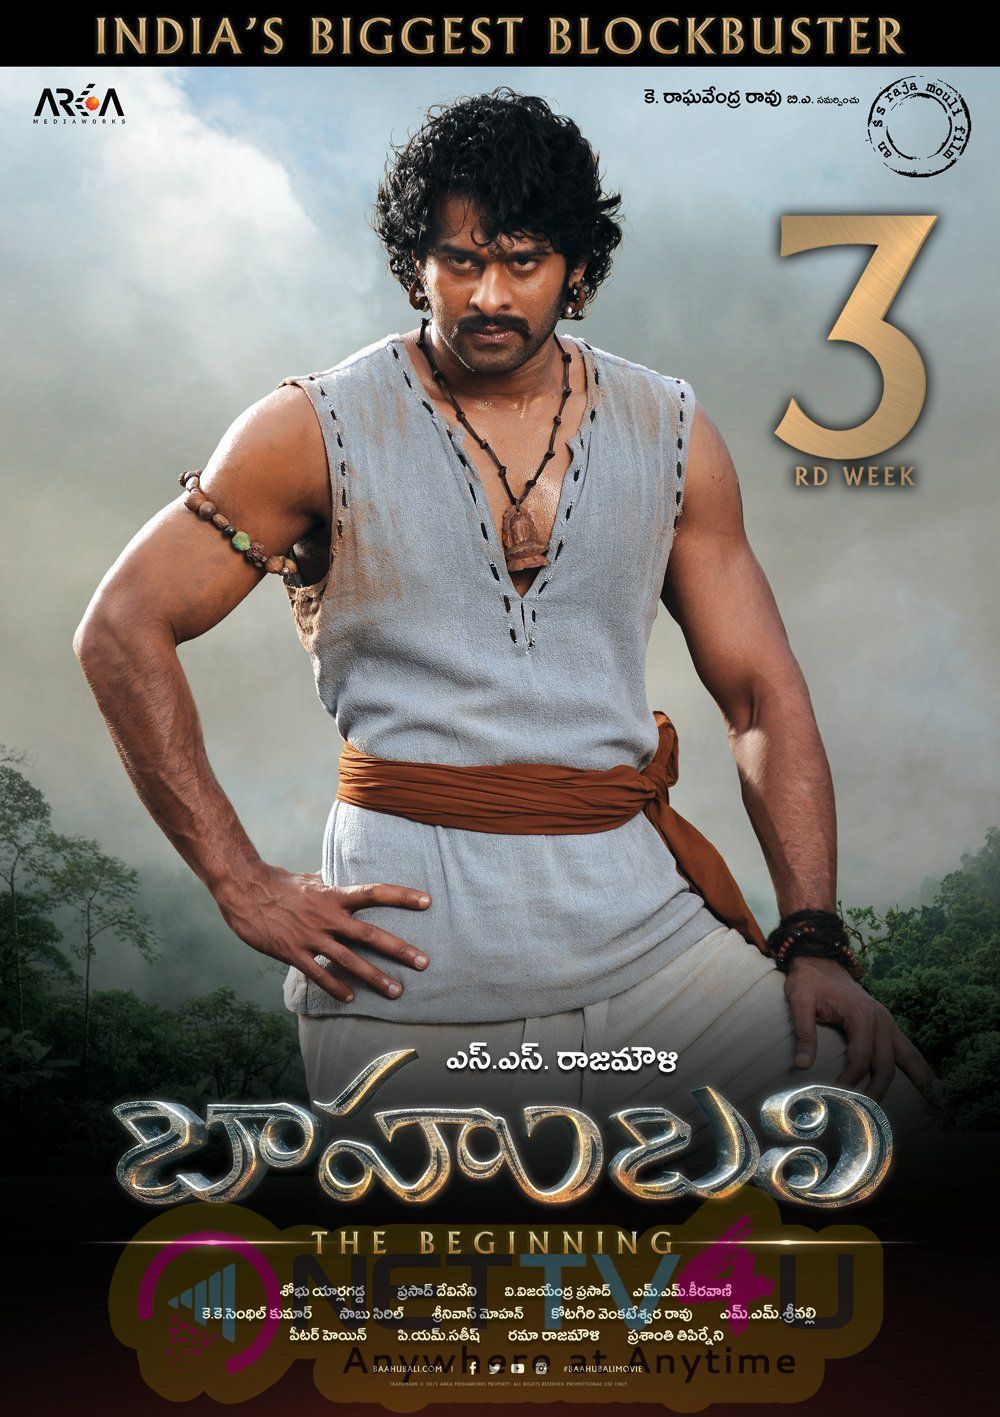 Wallpapers And Posters For Bahubali Tollywood Movie 30 Days